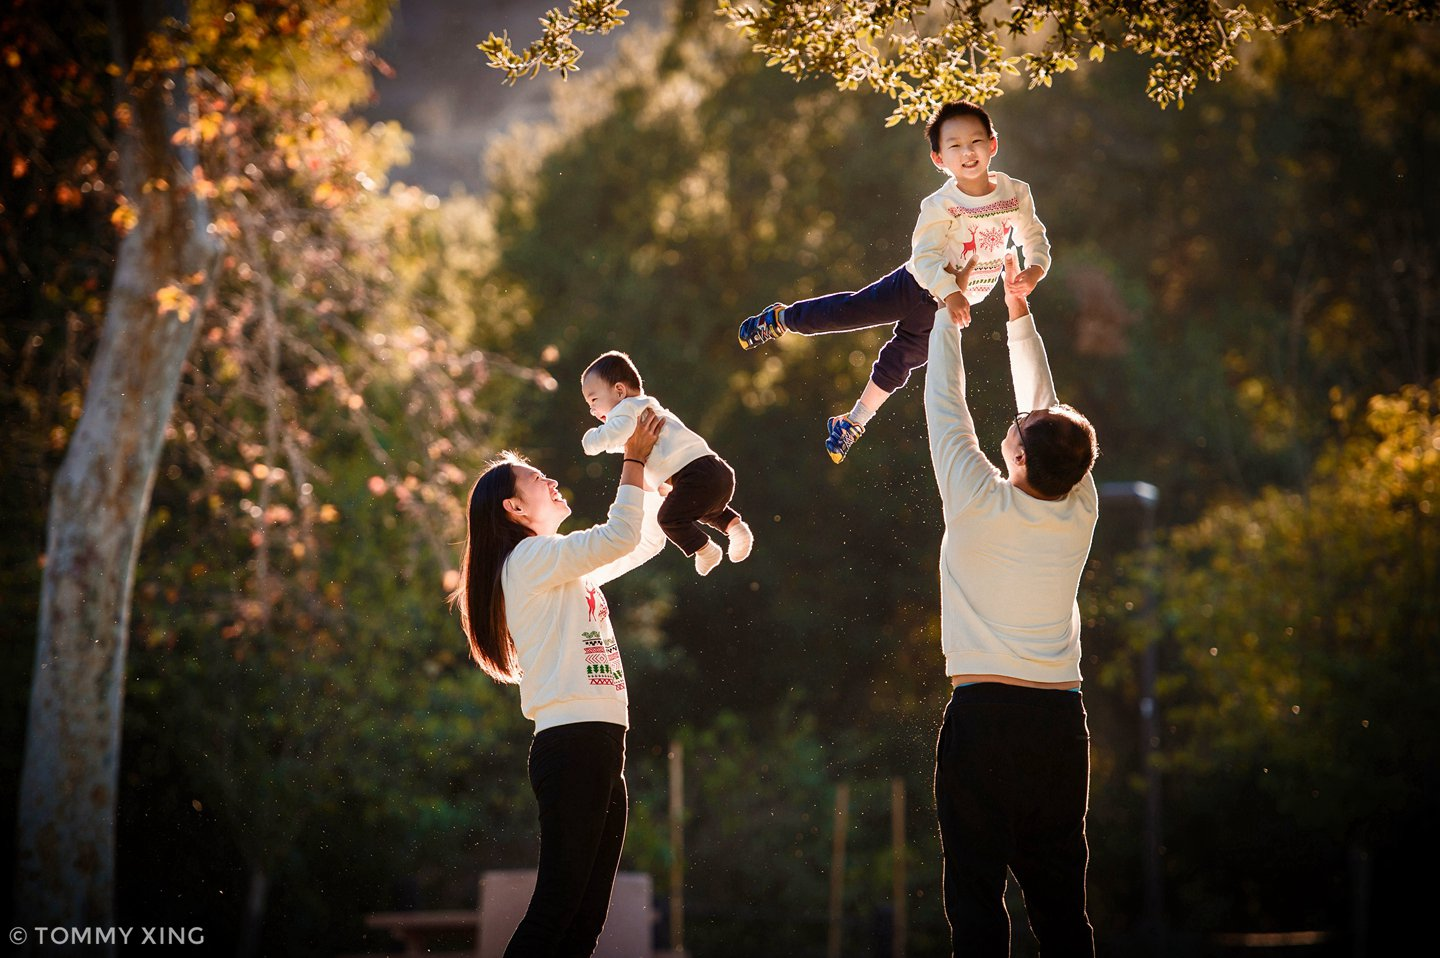 Los Angeles Family Portrait Photographer 洛杉矶家庭摄影师 Tommy Xing  06.jpg